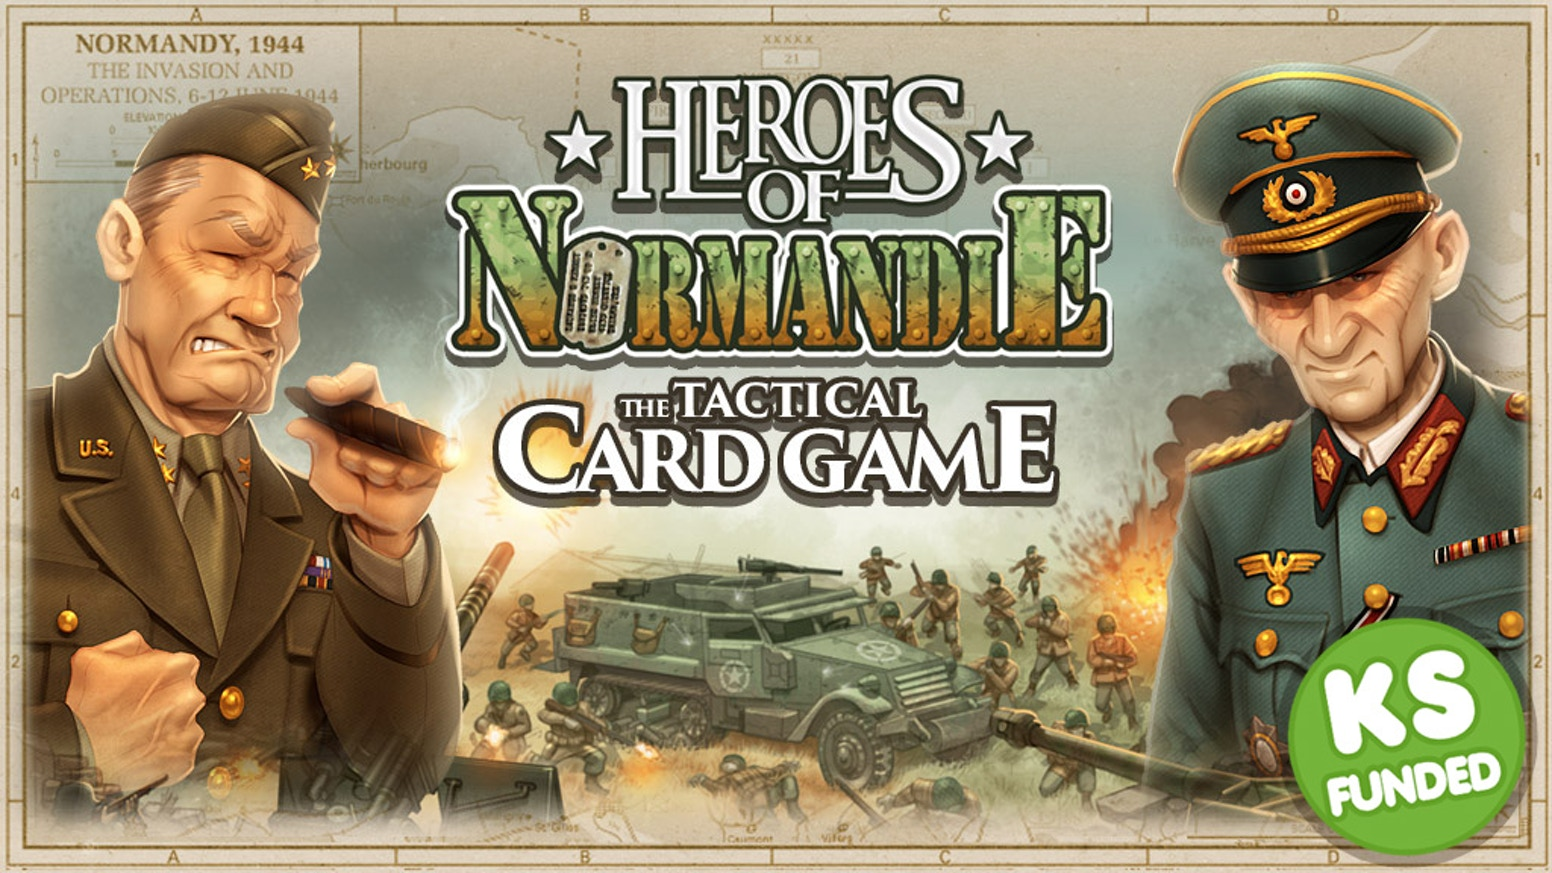 """Set in the """"Heroes of Normandie"""" universe, this tactical card game sends you to the Normandy battlefields to lead Operation Overlord."""